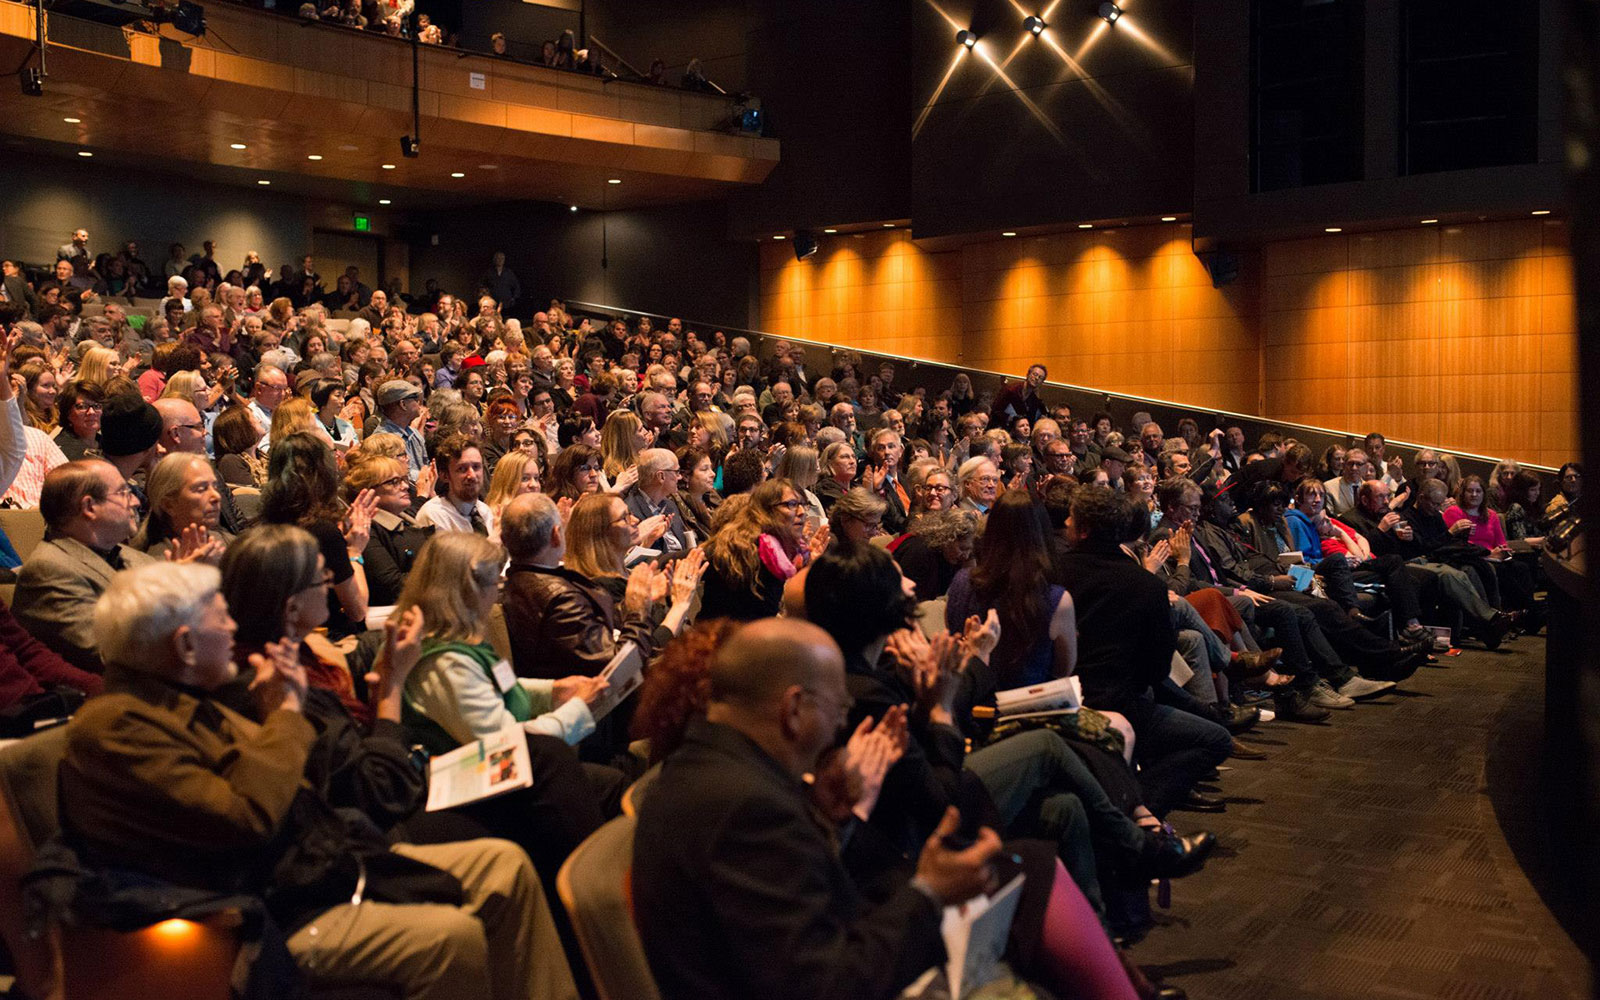 PORTLAND0815-portland-arts-and-lecture.jpg